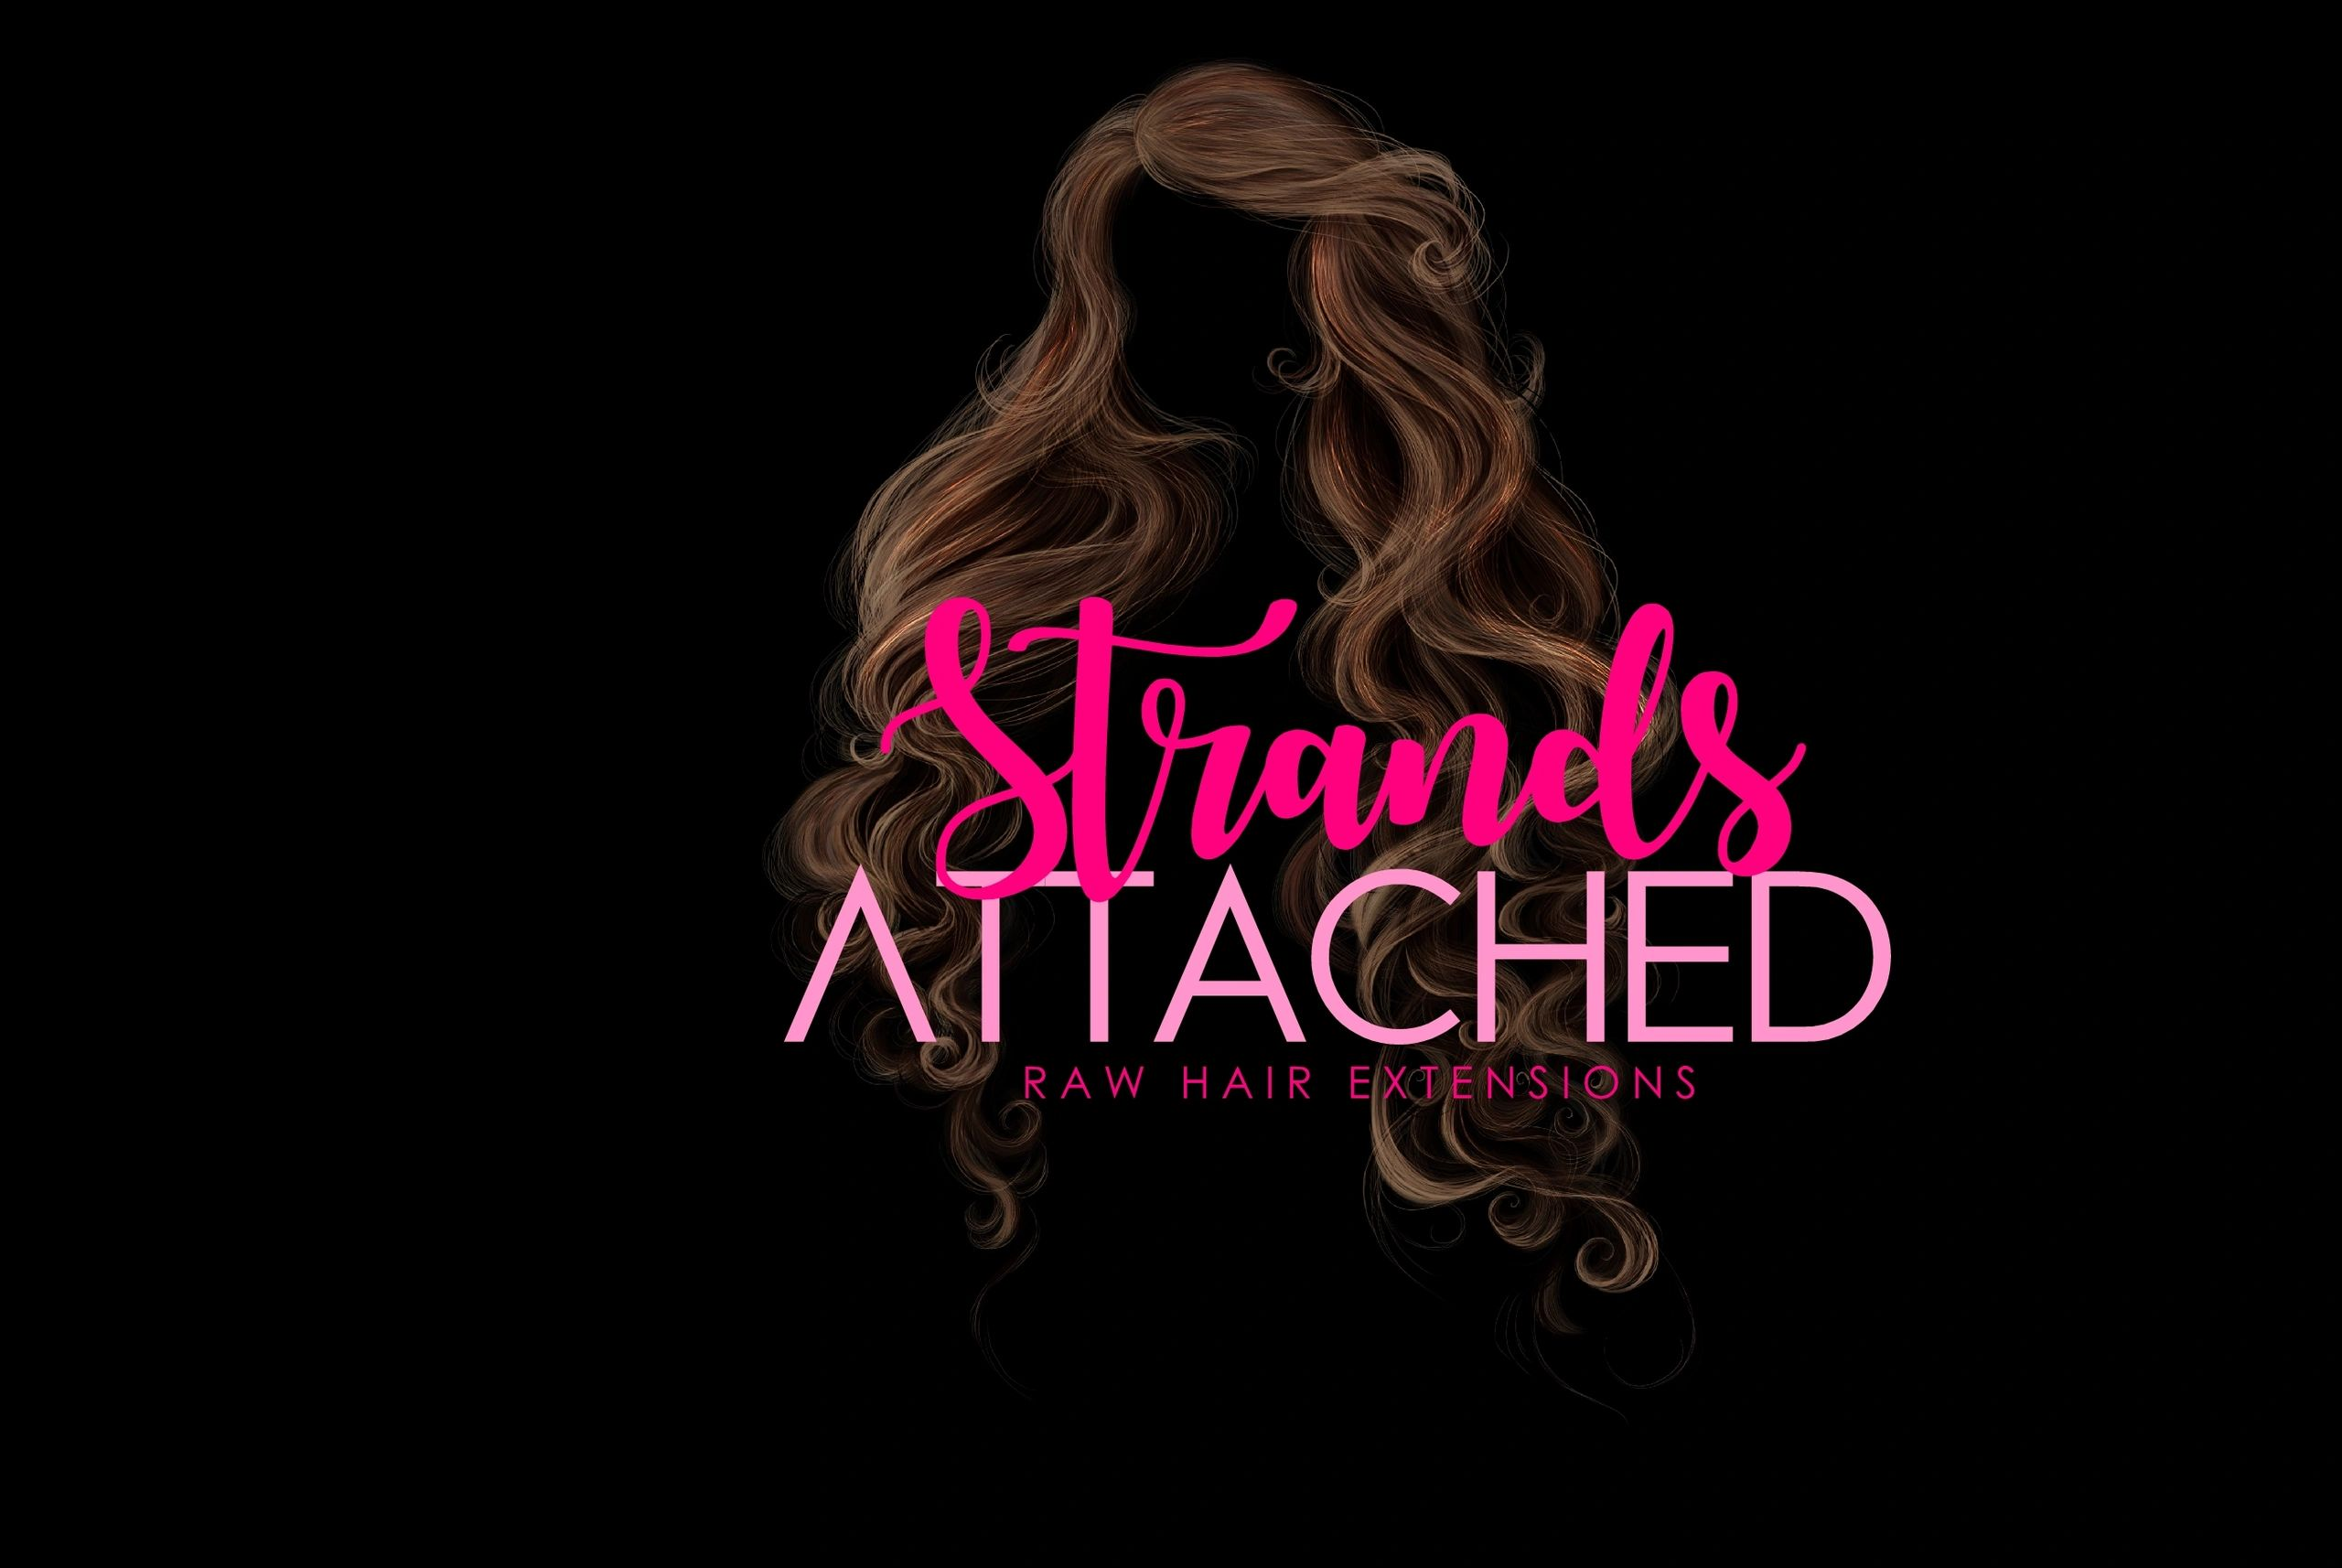 Strands attached a raw hair collection.